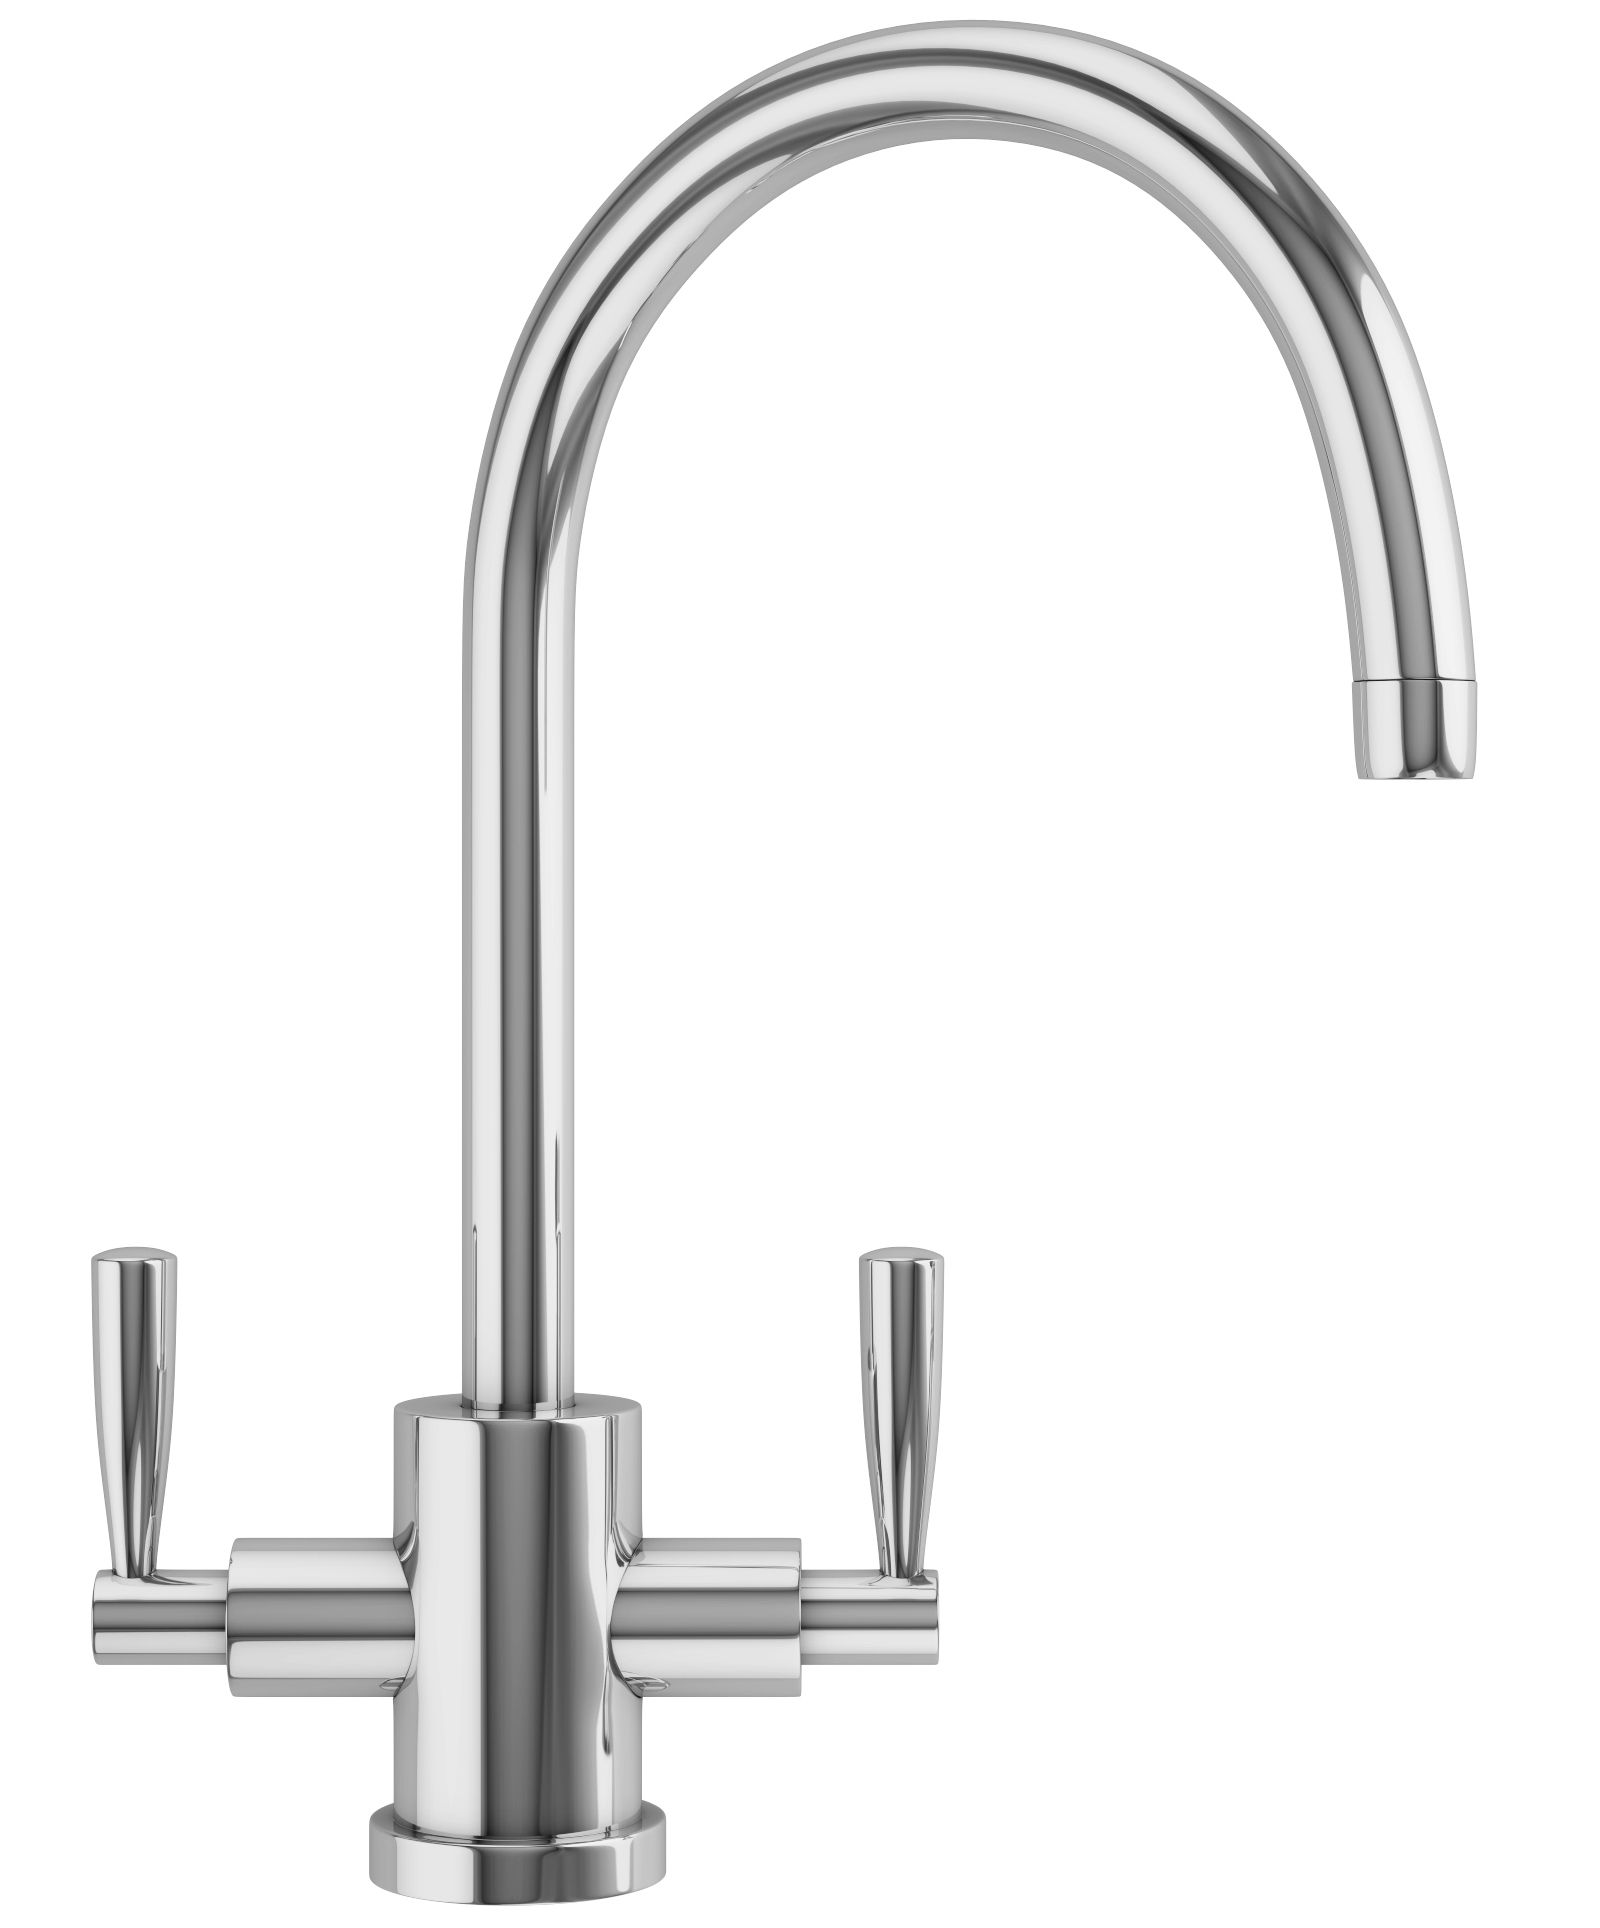 Franke Olympus Chrome Kitchen Sink Mixer Tap - I like this ...